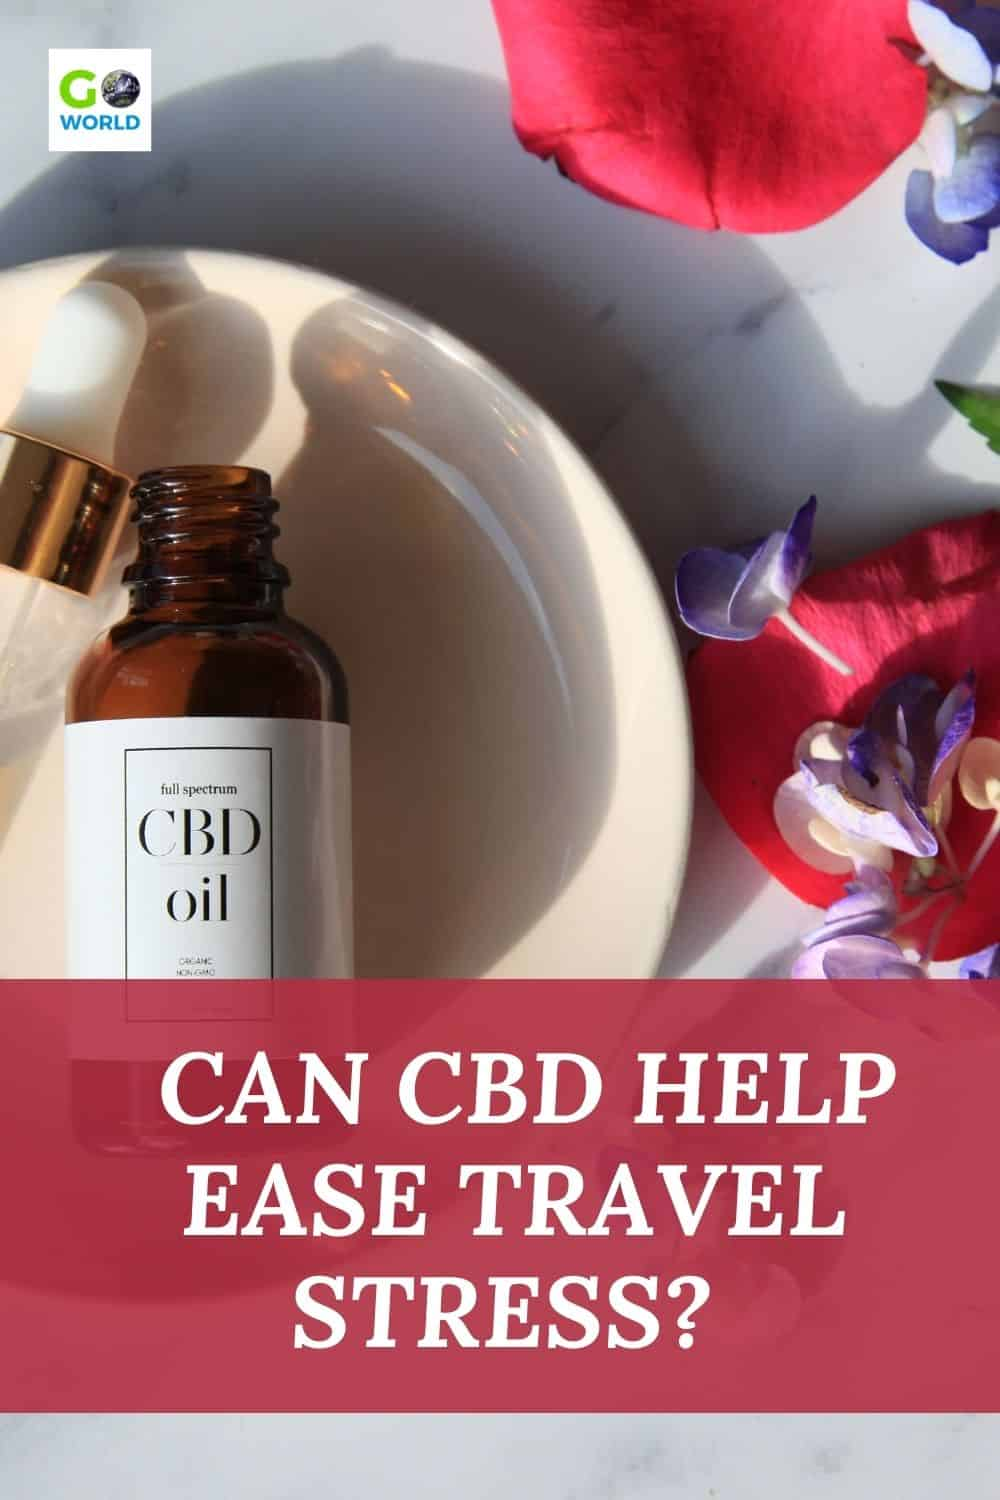 Thinking of travel with CBD to alleviate stress? This article looks at how CBD may help ease anxiety & how you may be able to travel with it. #travelstress #CBDfortravel #CBDforanxiety